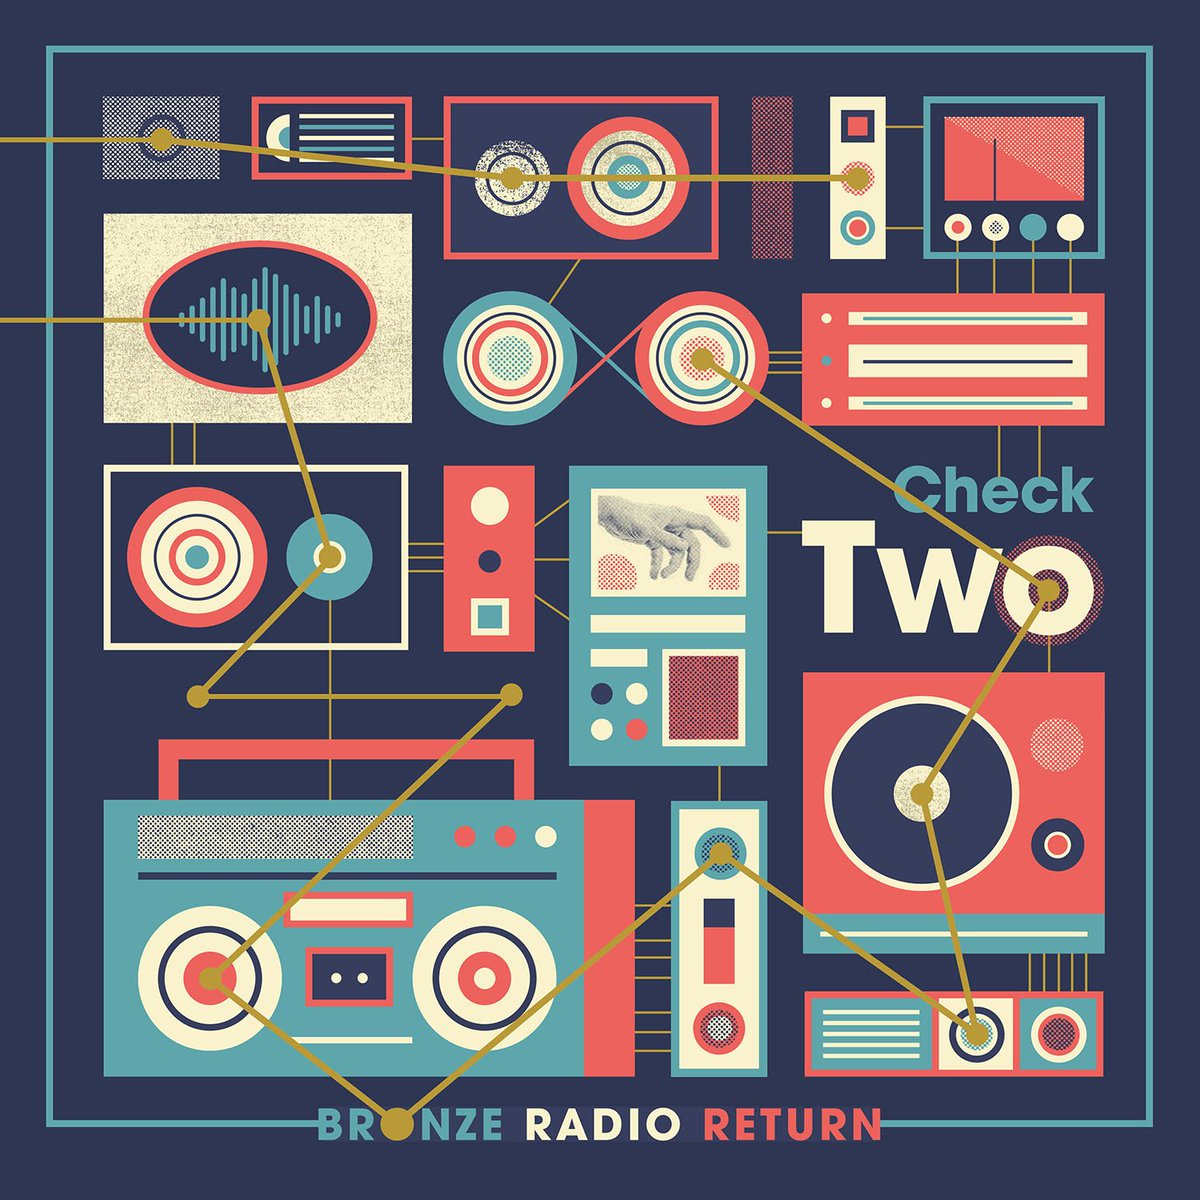 Image result for check two bronze radio return